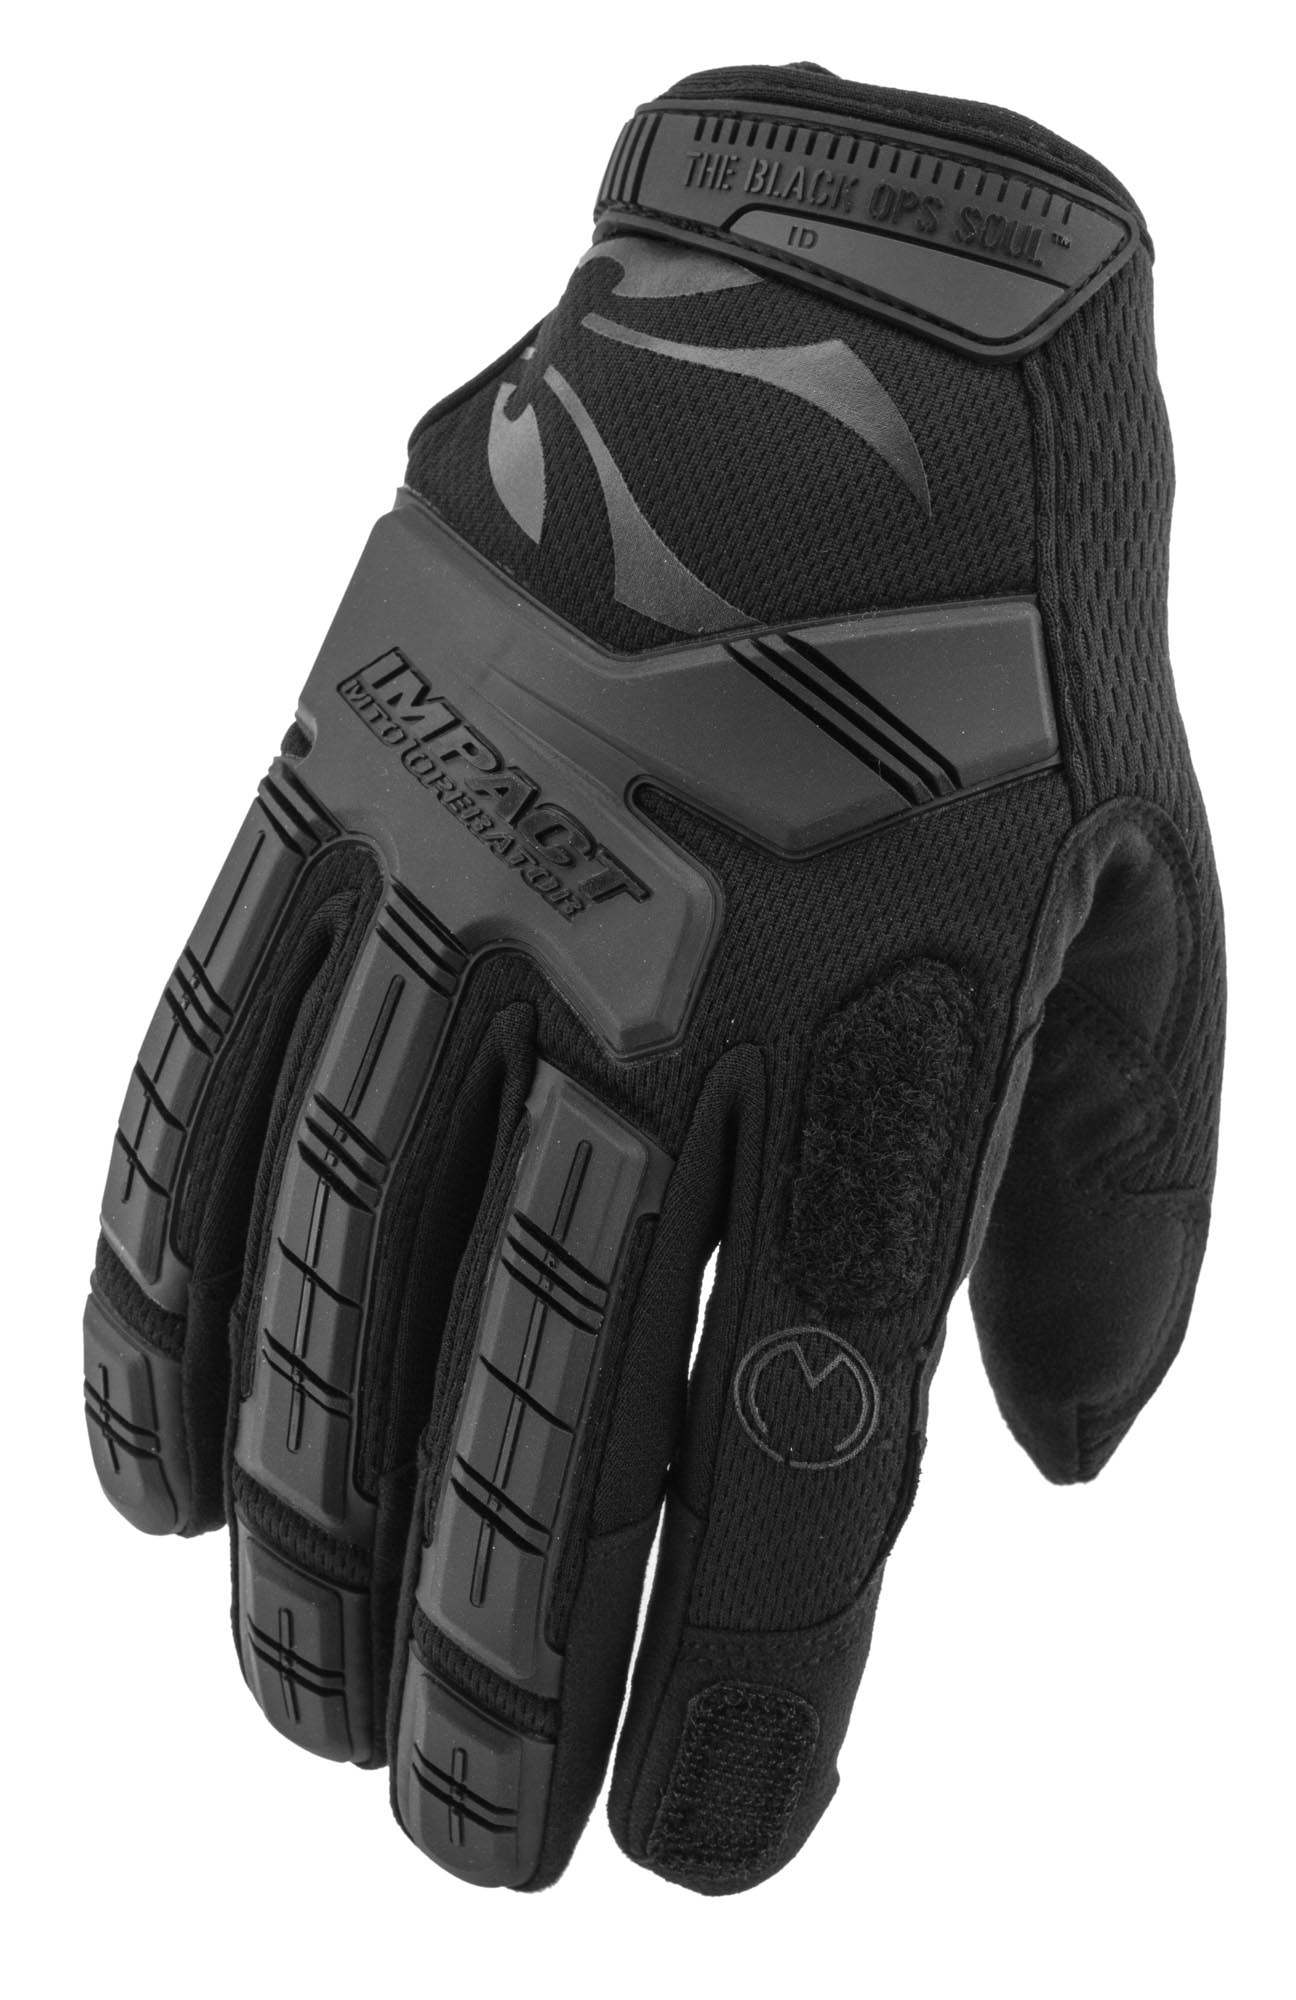 Photo Gants - MTO OPERATOR by Mechanix - Covert - Taille/size M